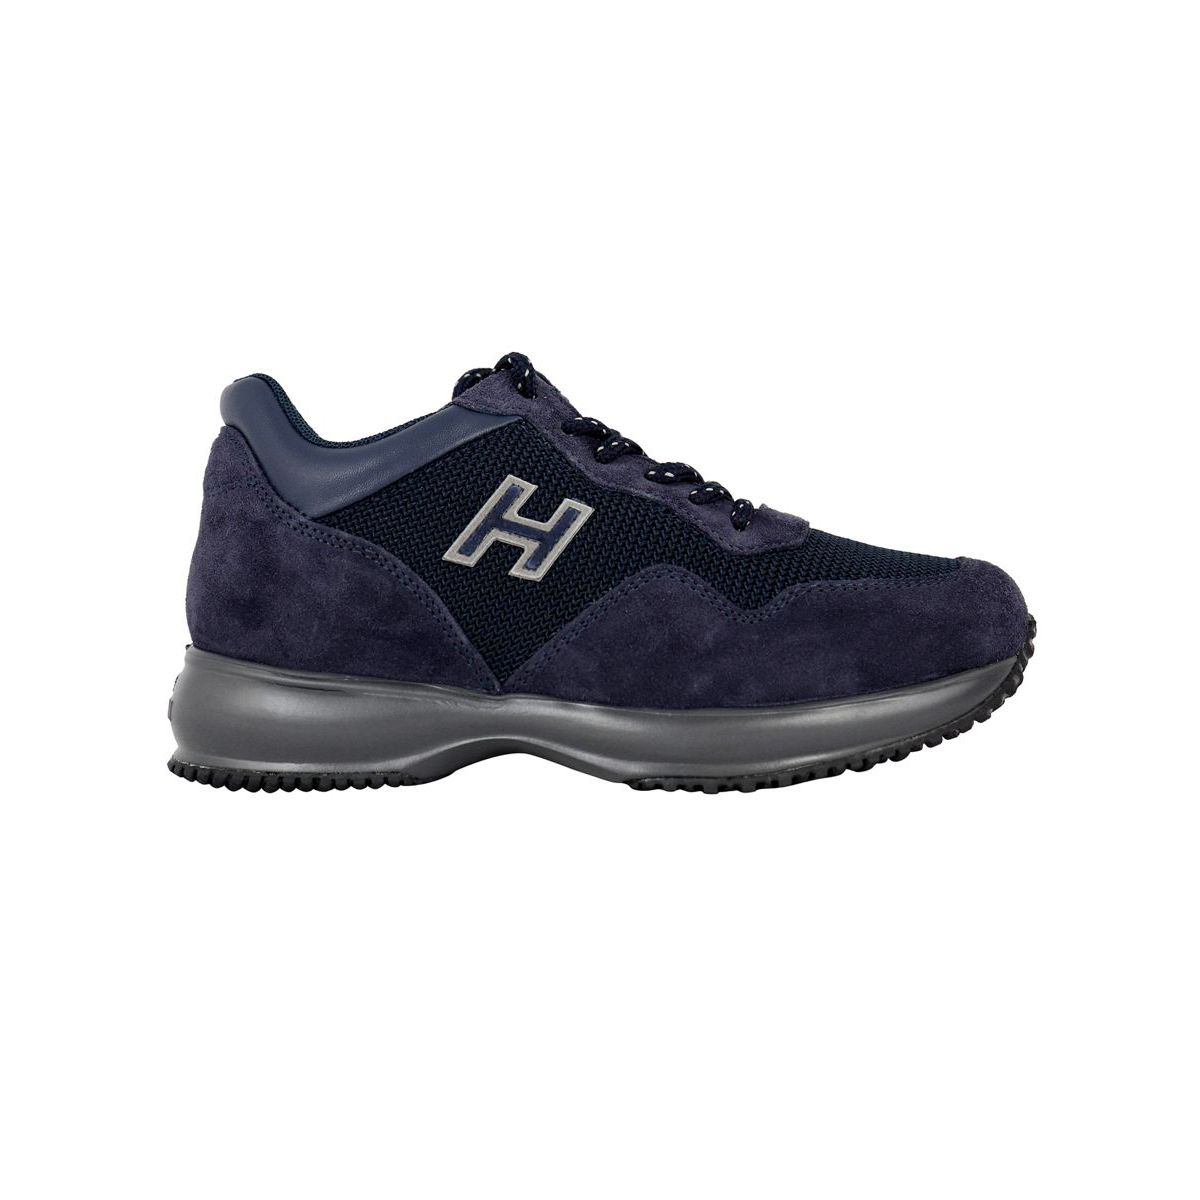 INTERACTIVE sneakers with H and contrasting laces Blue Hogan